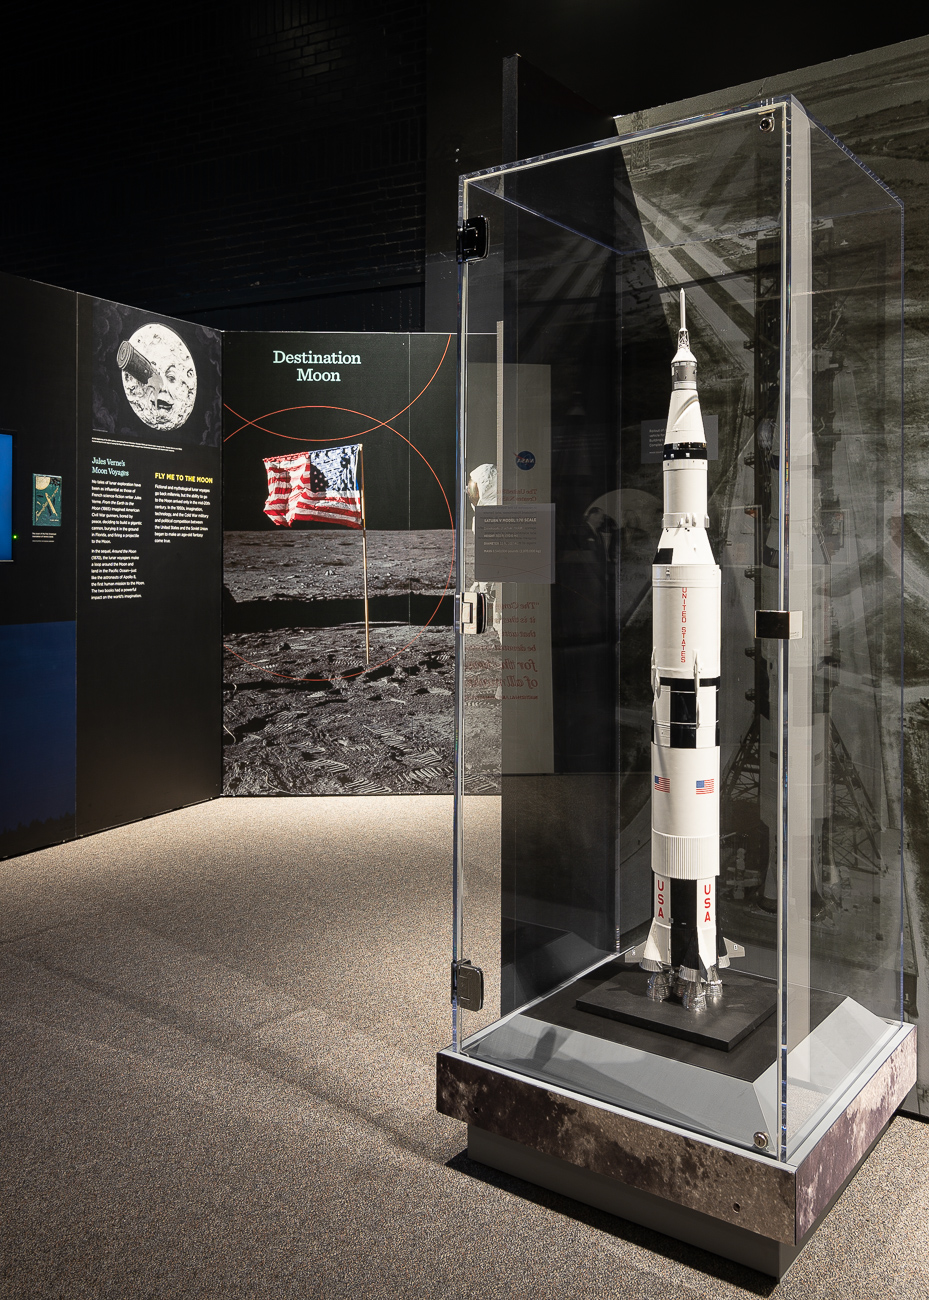 Neil Armstrong, Buzz Aldrin, and Michael Collins were the three astronauts who successfully completed the Apollo 11 mission. Armstrong and Aldrin stepped foot on the moon while Collins stayed in orbit in the command module. The three were regarded as heroes when they were recovered from the Pacific Ocean after returning to Earth. / Image: Phil Armstrong, Cincinnati Refined // Published: 10.2.19